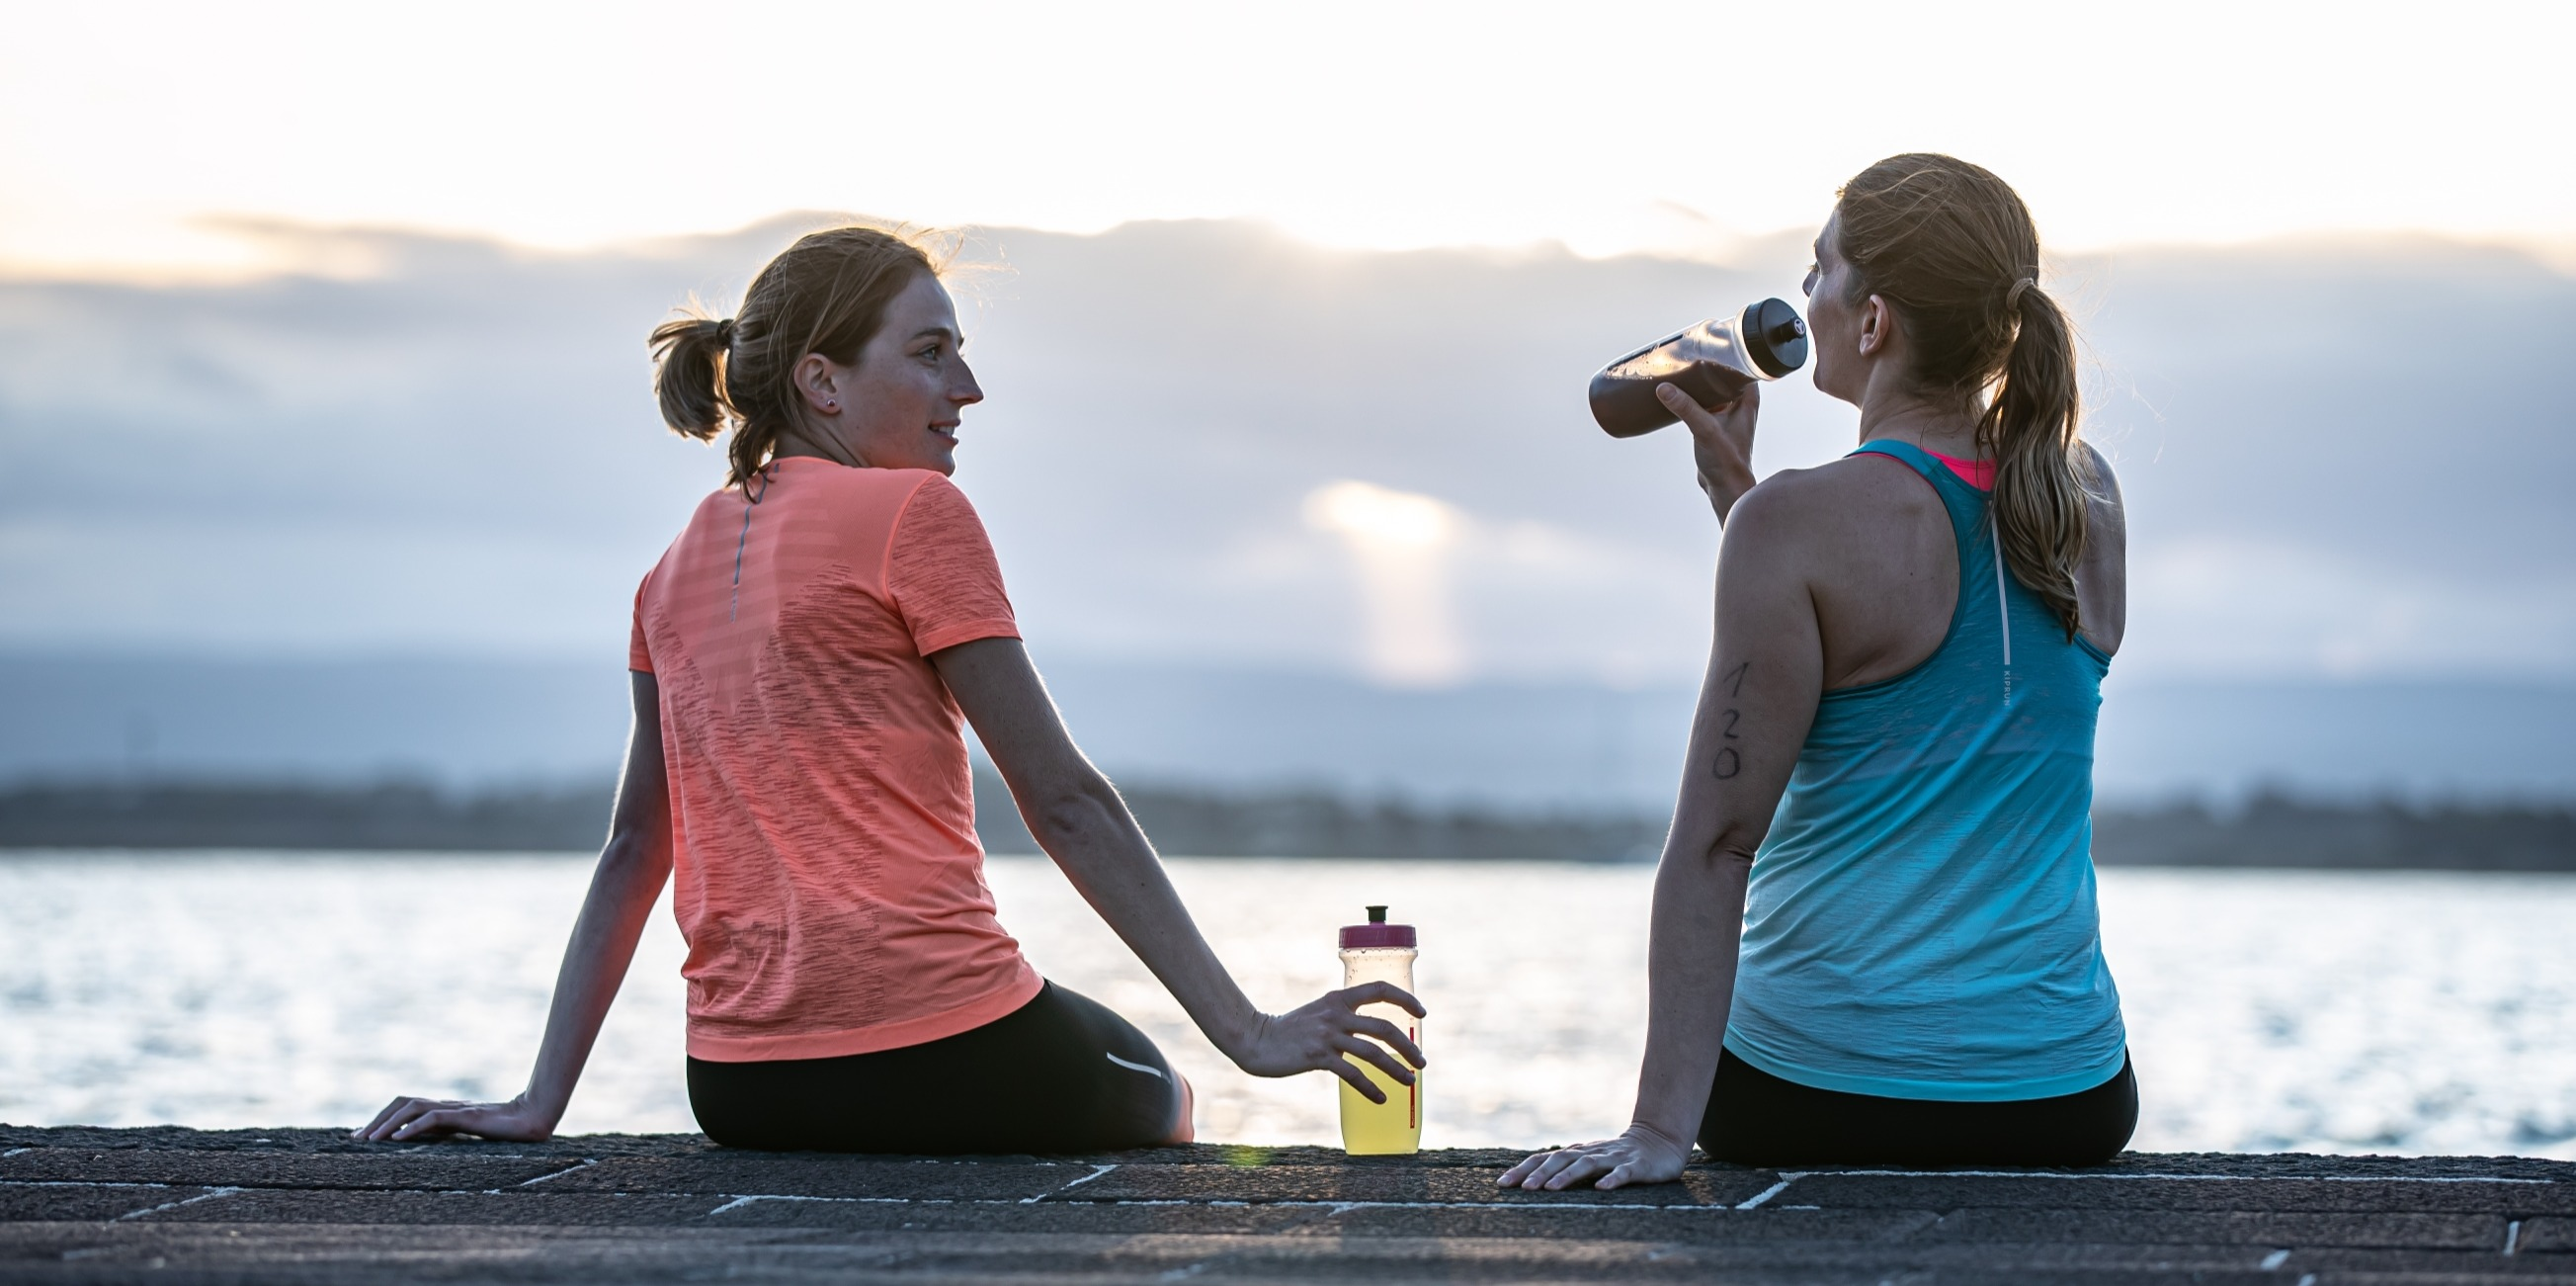 Triathlon For Beginners: What Do I Eat And Drink While Training For Triathlons?